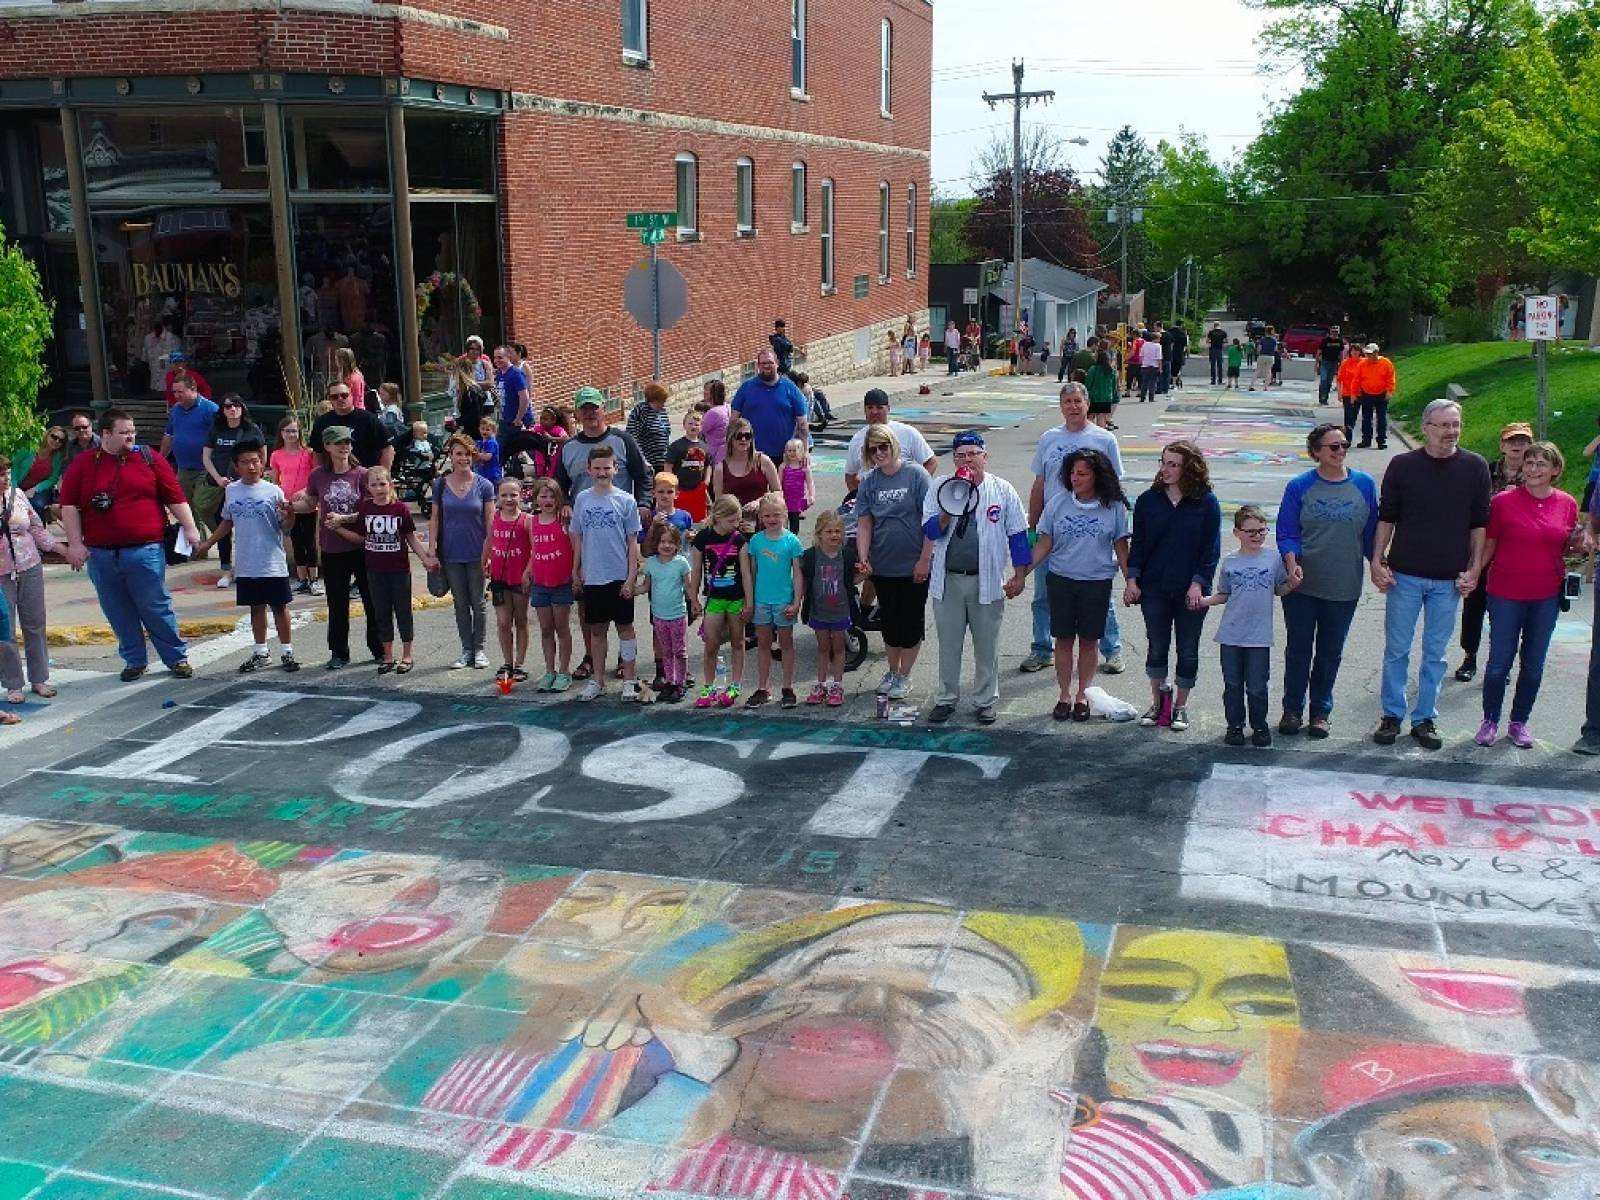 A group of residents in a small town use chalk to create artwork on a street